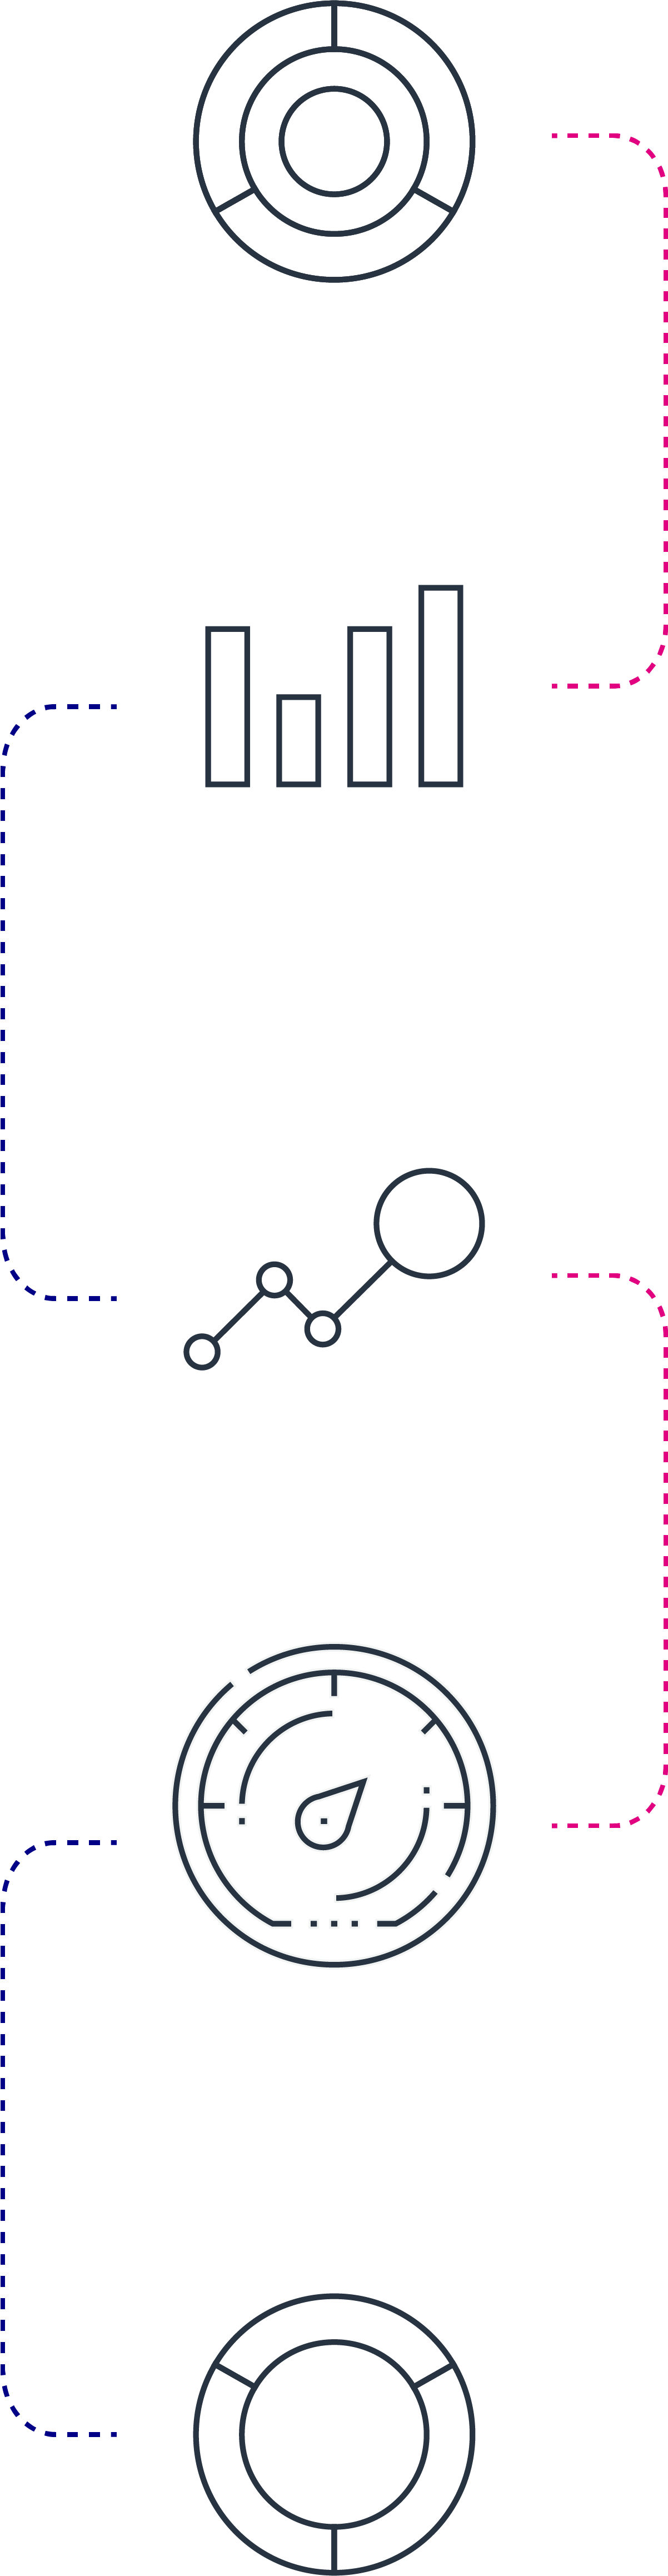 graphics showing business processes